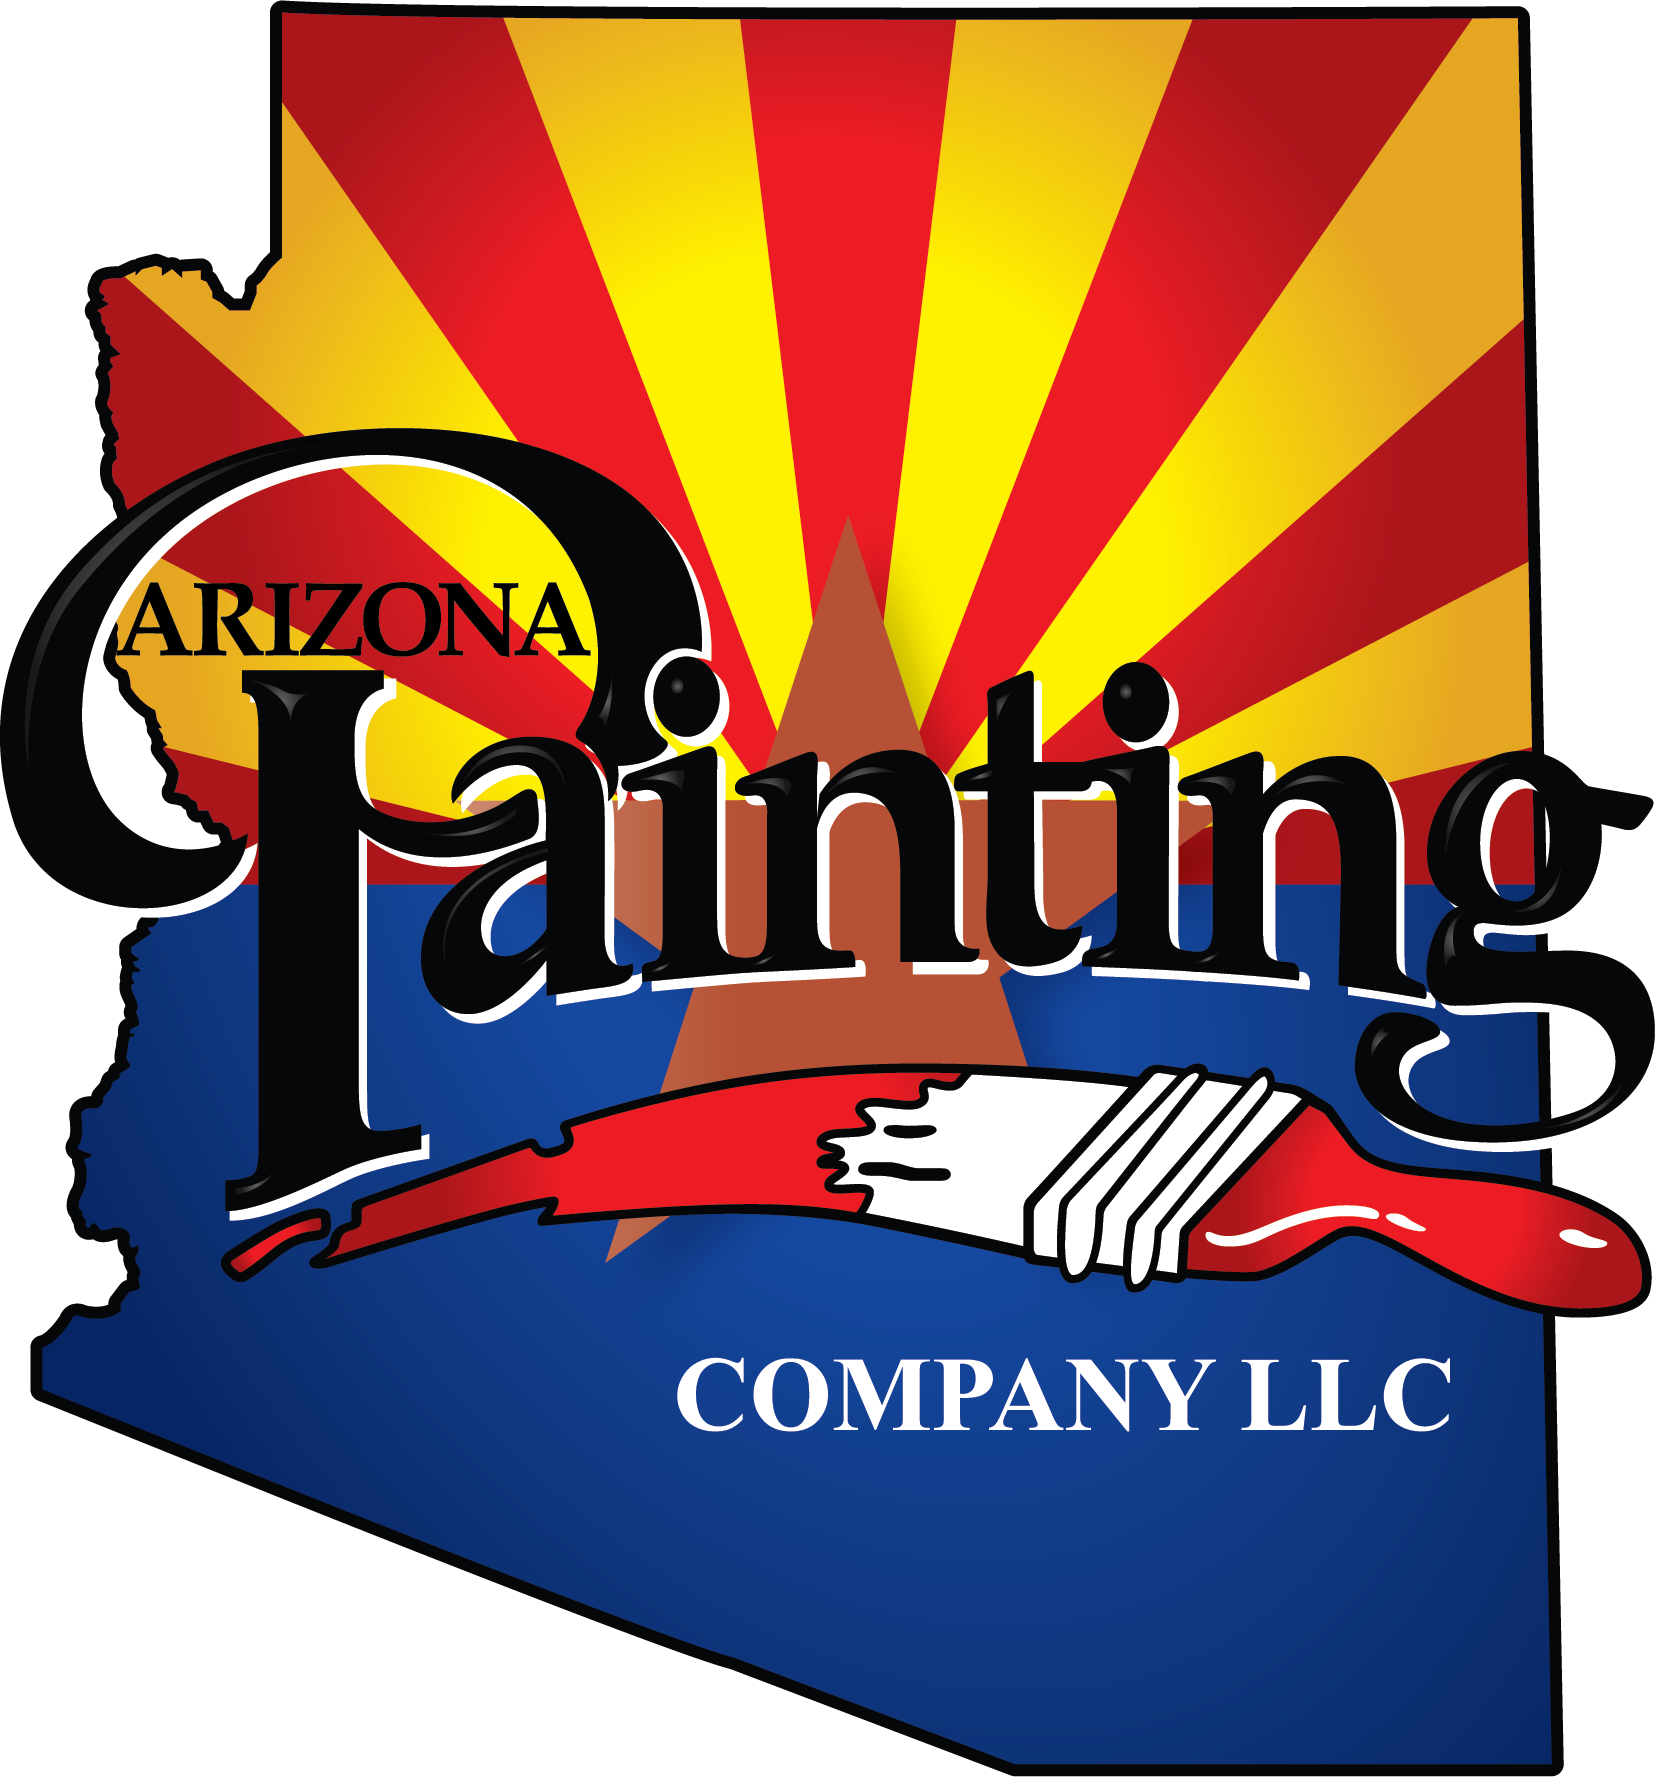 Residential & Commercial Painting Services | Phoenix & Tucson Painting Services | Arizona Painting Company